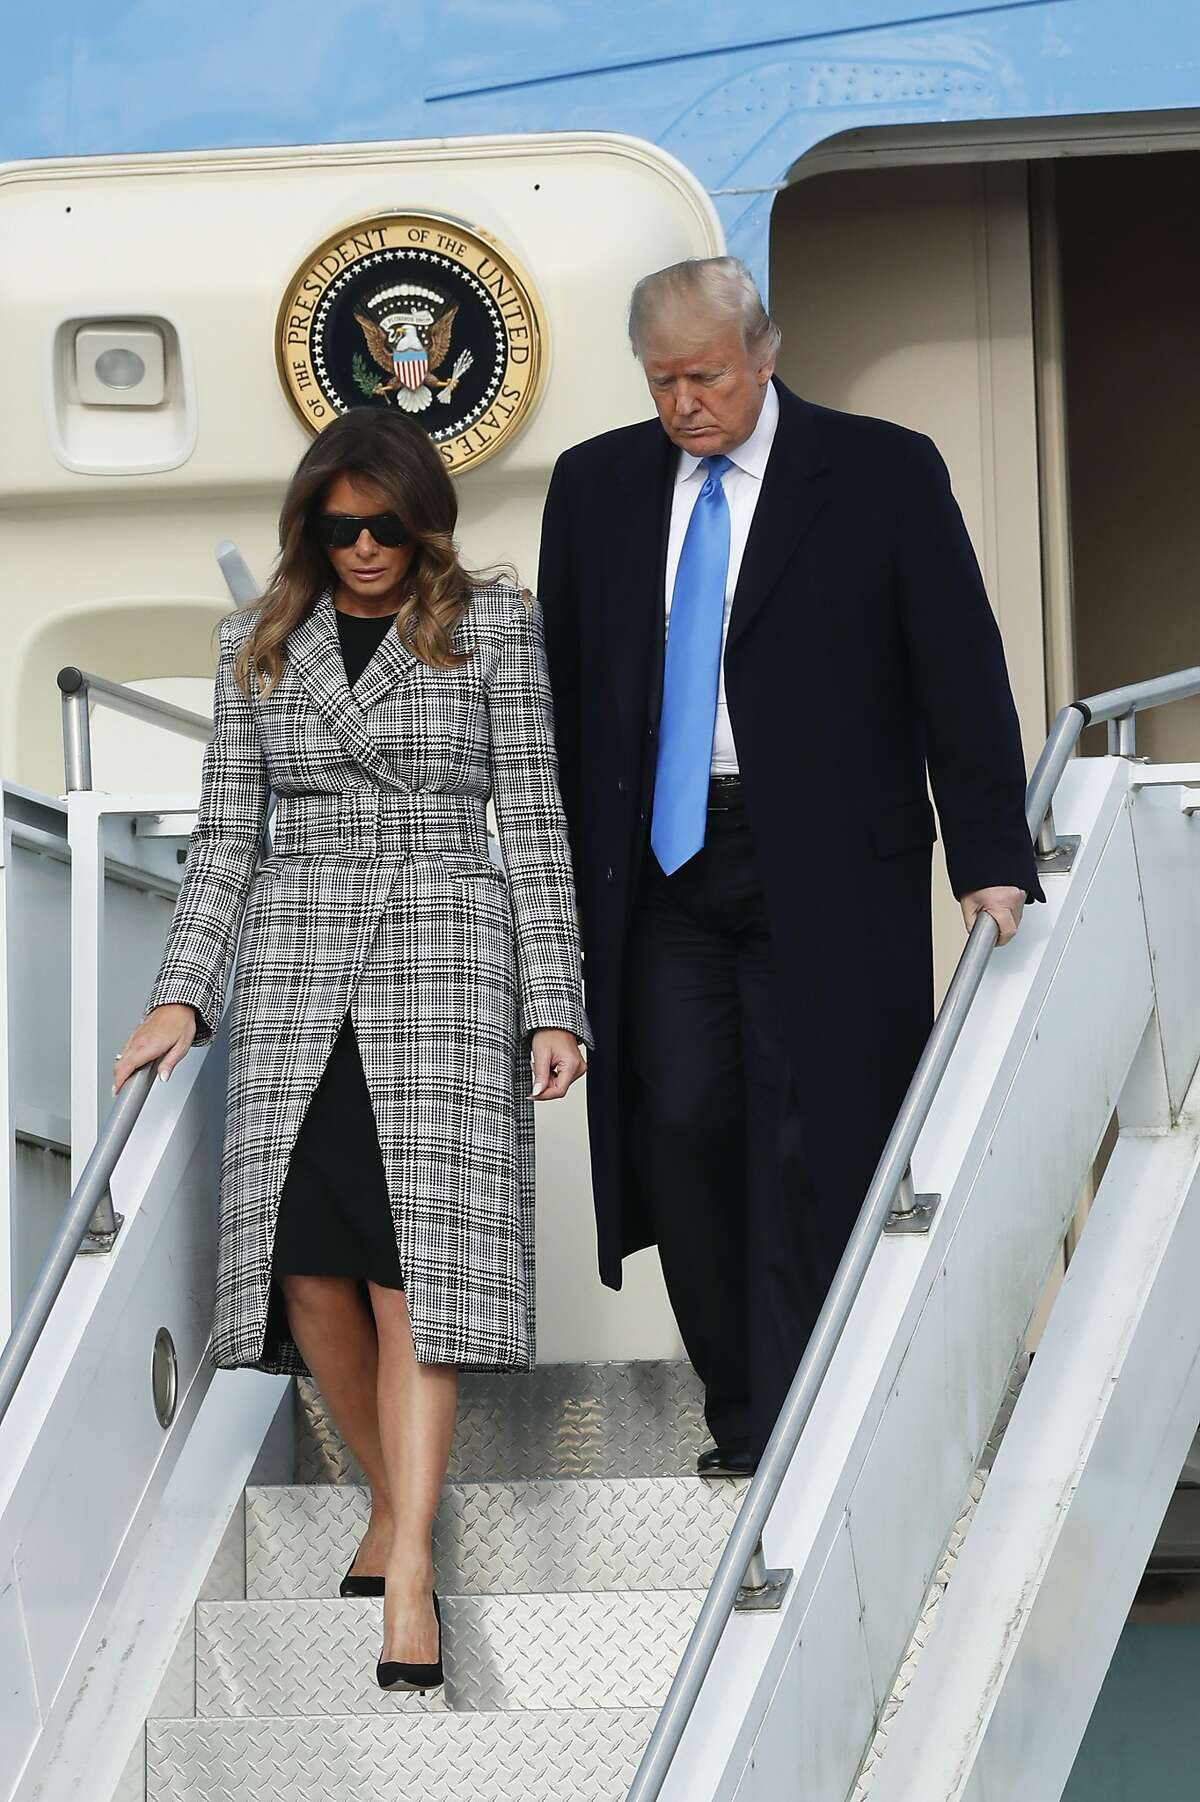 President Donald Trump, right, departs Air Force One as he arrives with first lady Melania Trump on Tuesday, Oct. 30, 2018 in Coraopolis, Pa. The Trumps came to Pittsburgh honor the victims of the deadly shooting at a synagogue in Pittsburgh's Squirrel Hill neighborhood on Saturday. (AP Photo/Keith Srakocic)